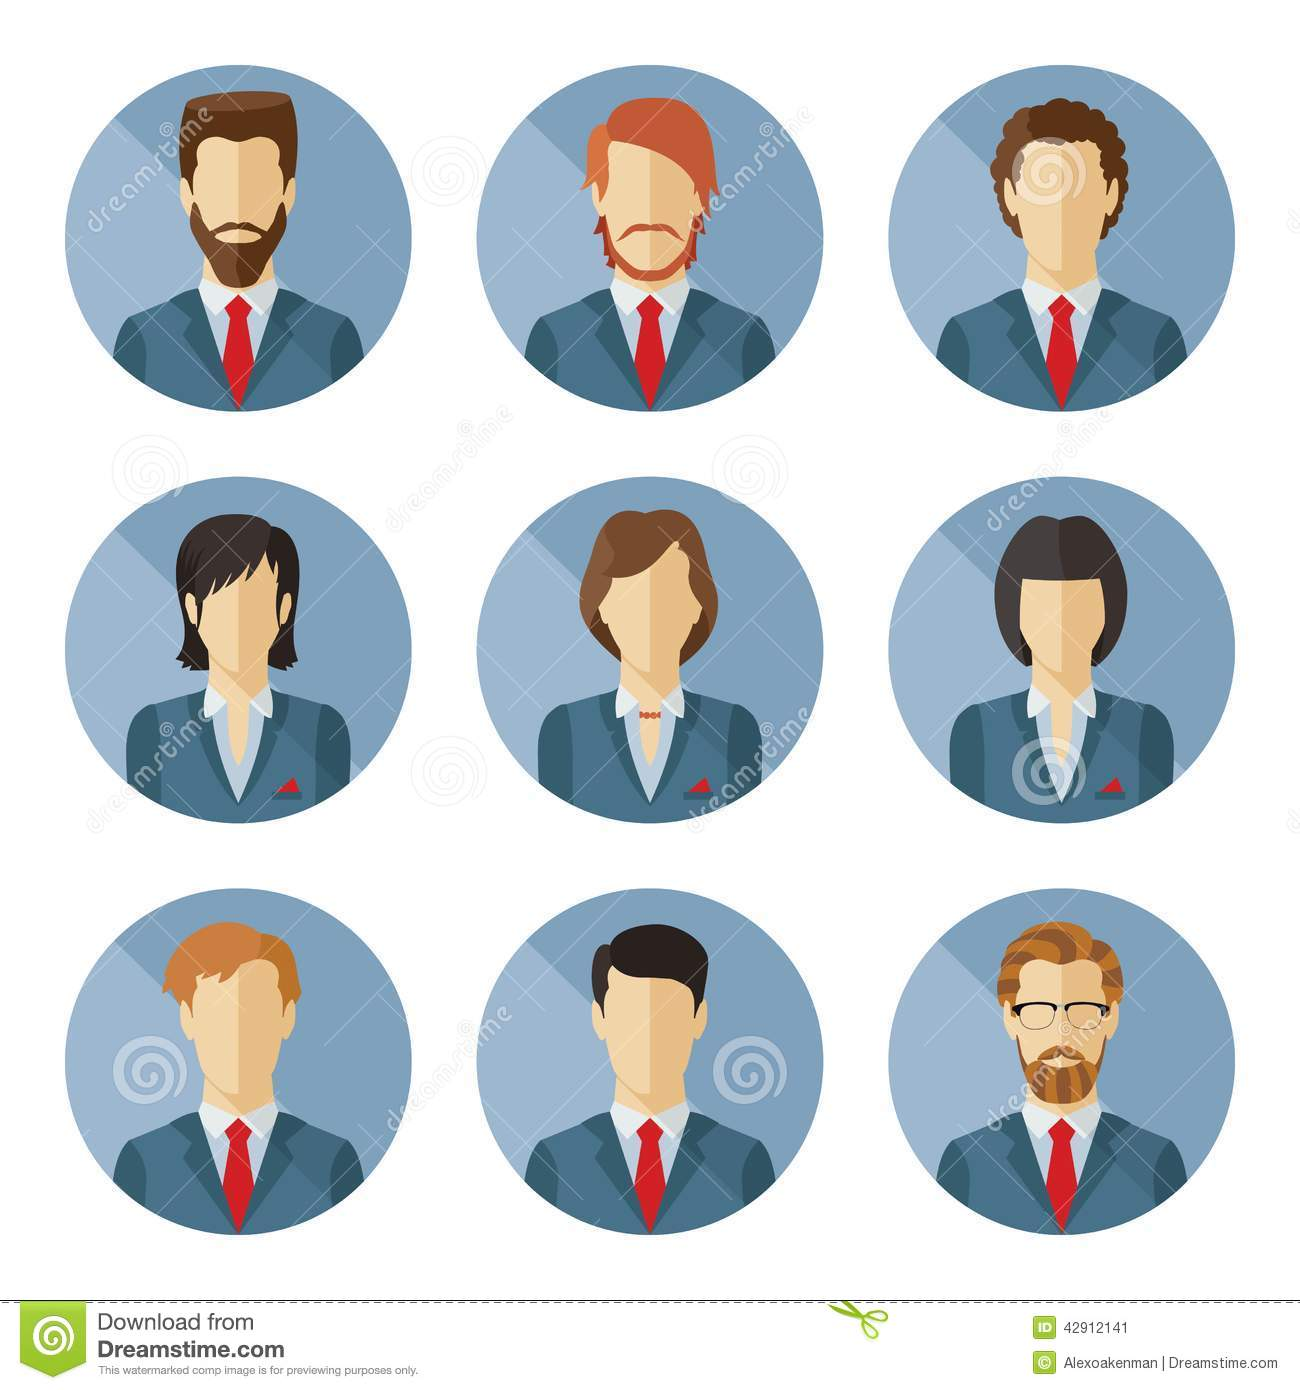 Flat Design Character Download : Set of vector business characters in flat design stock